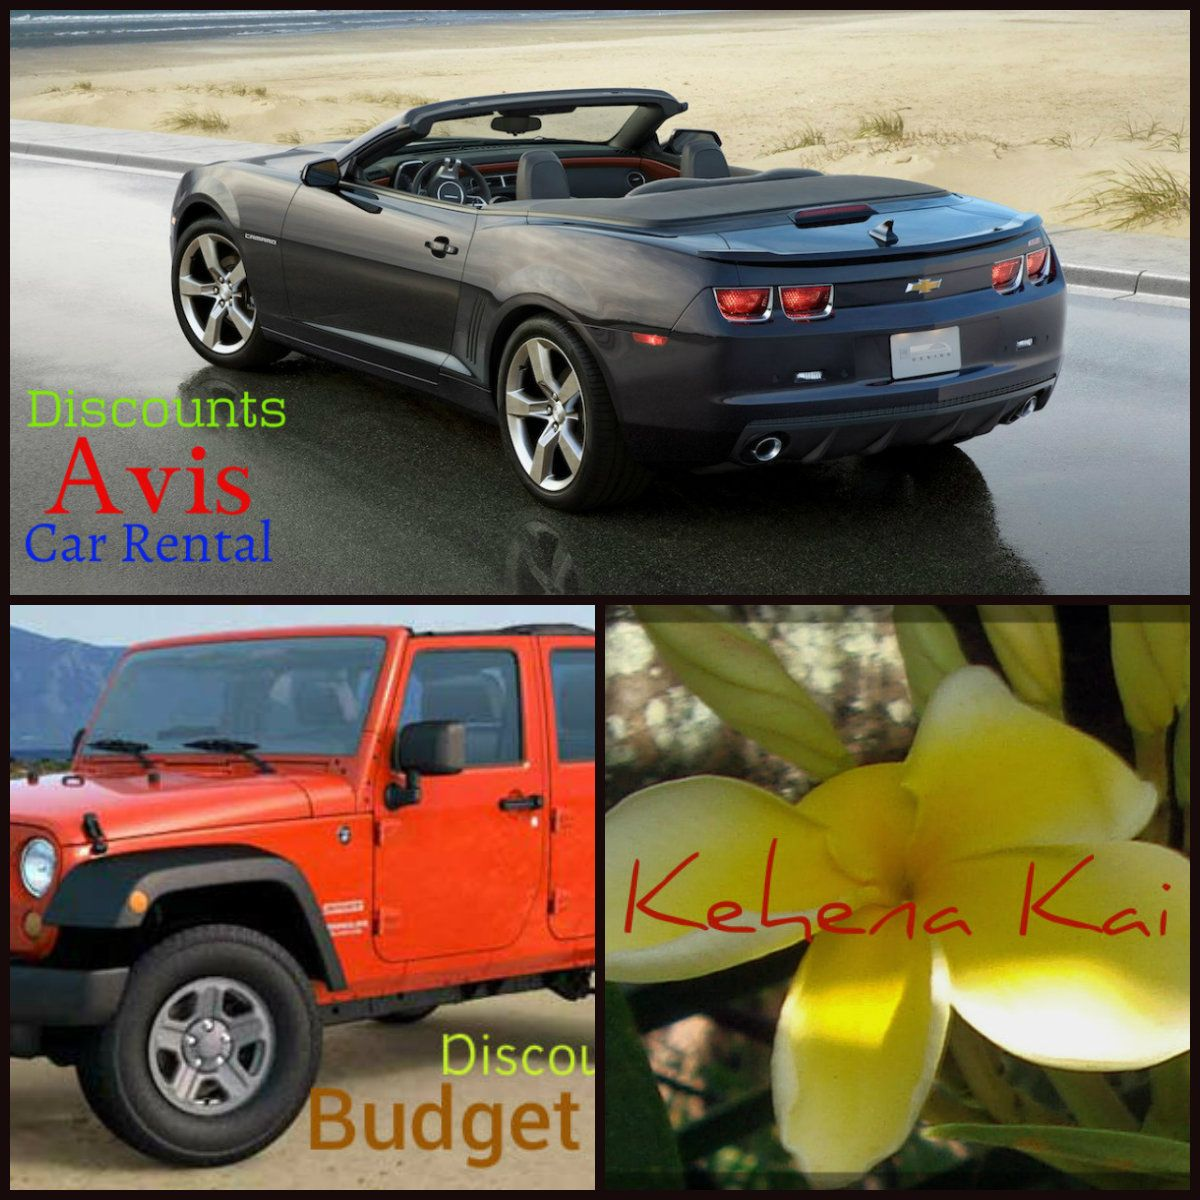 Convertible or Jeep ? Save on Car Rental while in Hawaii